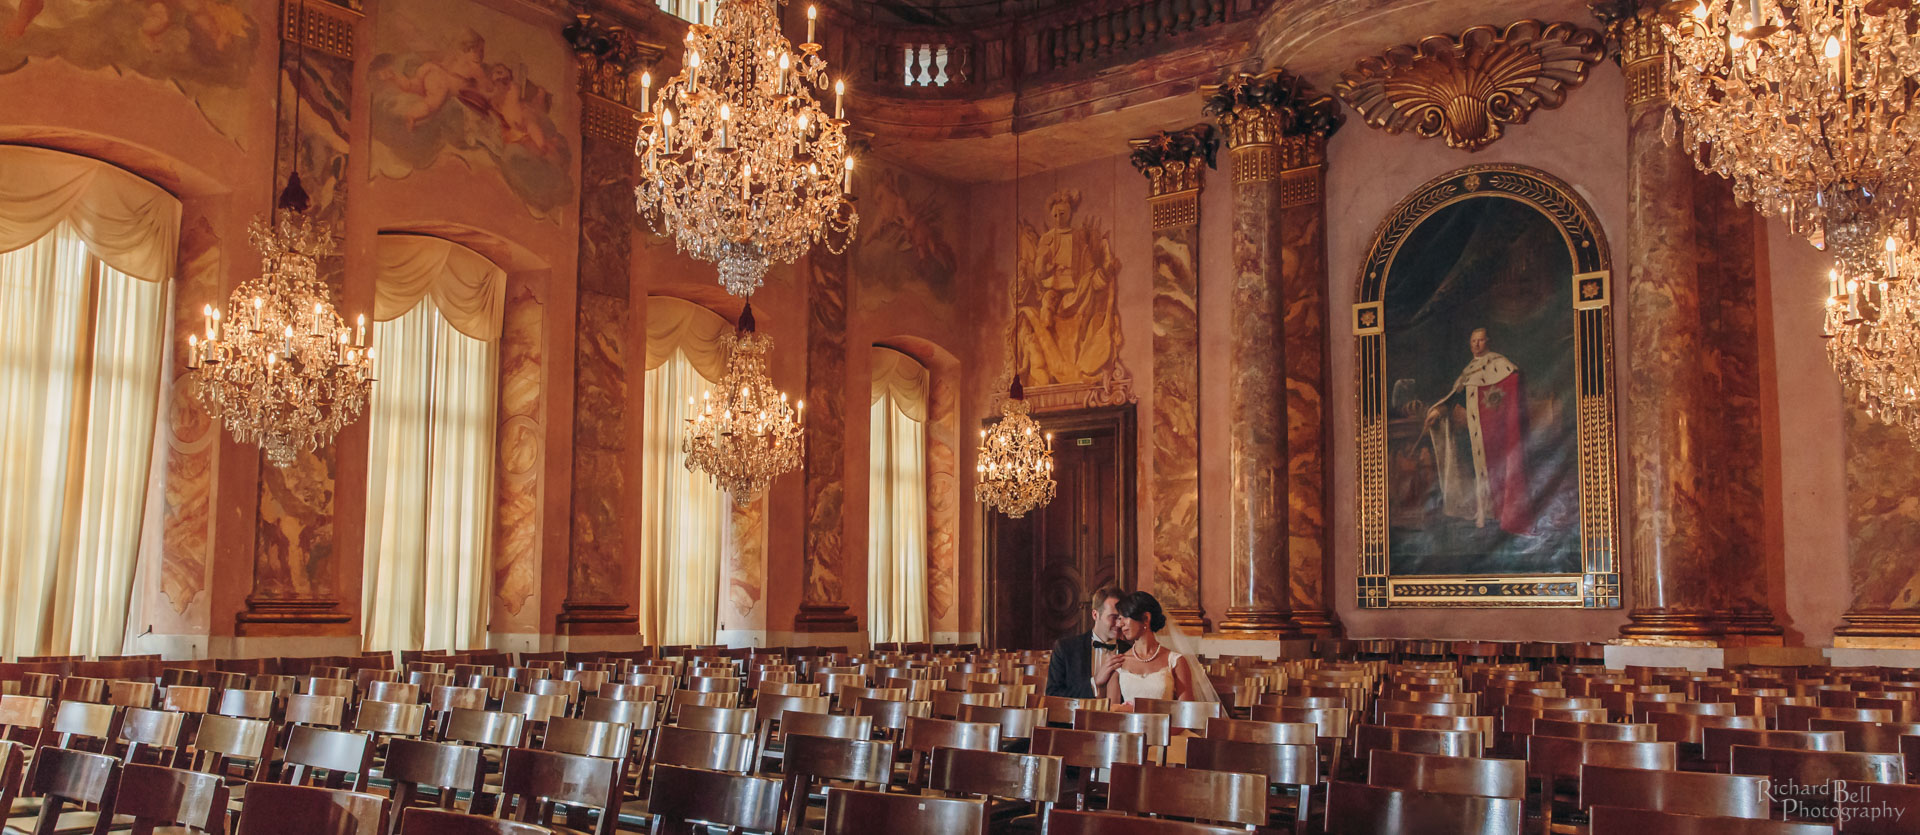 Bride and Groom in Palace Room